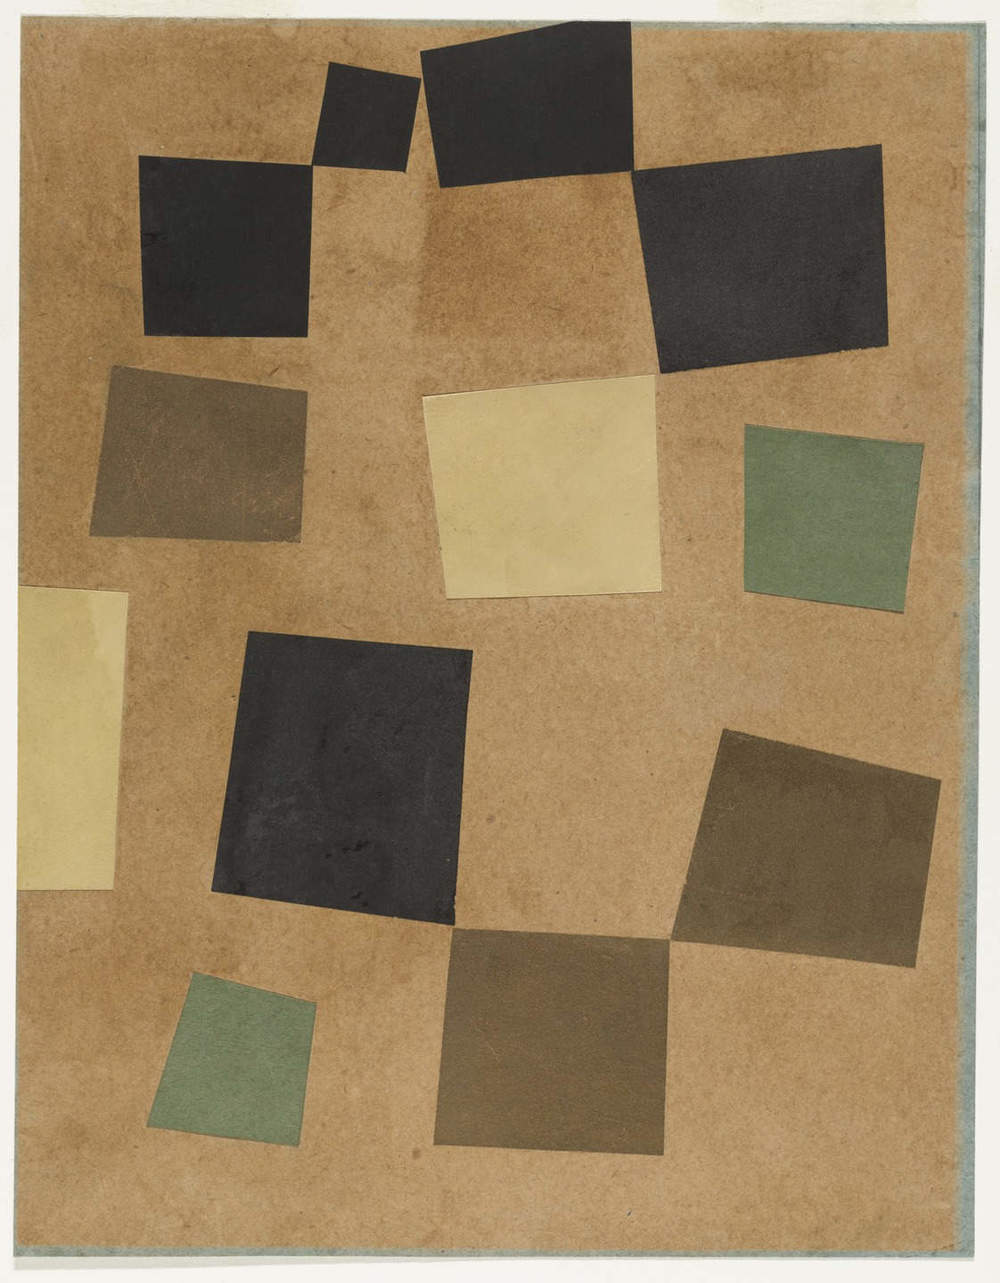 Jean (Hans) Arp, Untitled (Collage with Squares Arranged according to the Laws of Chance), 1917, Museum of Modern Art, New York.